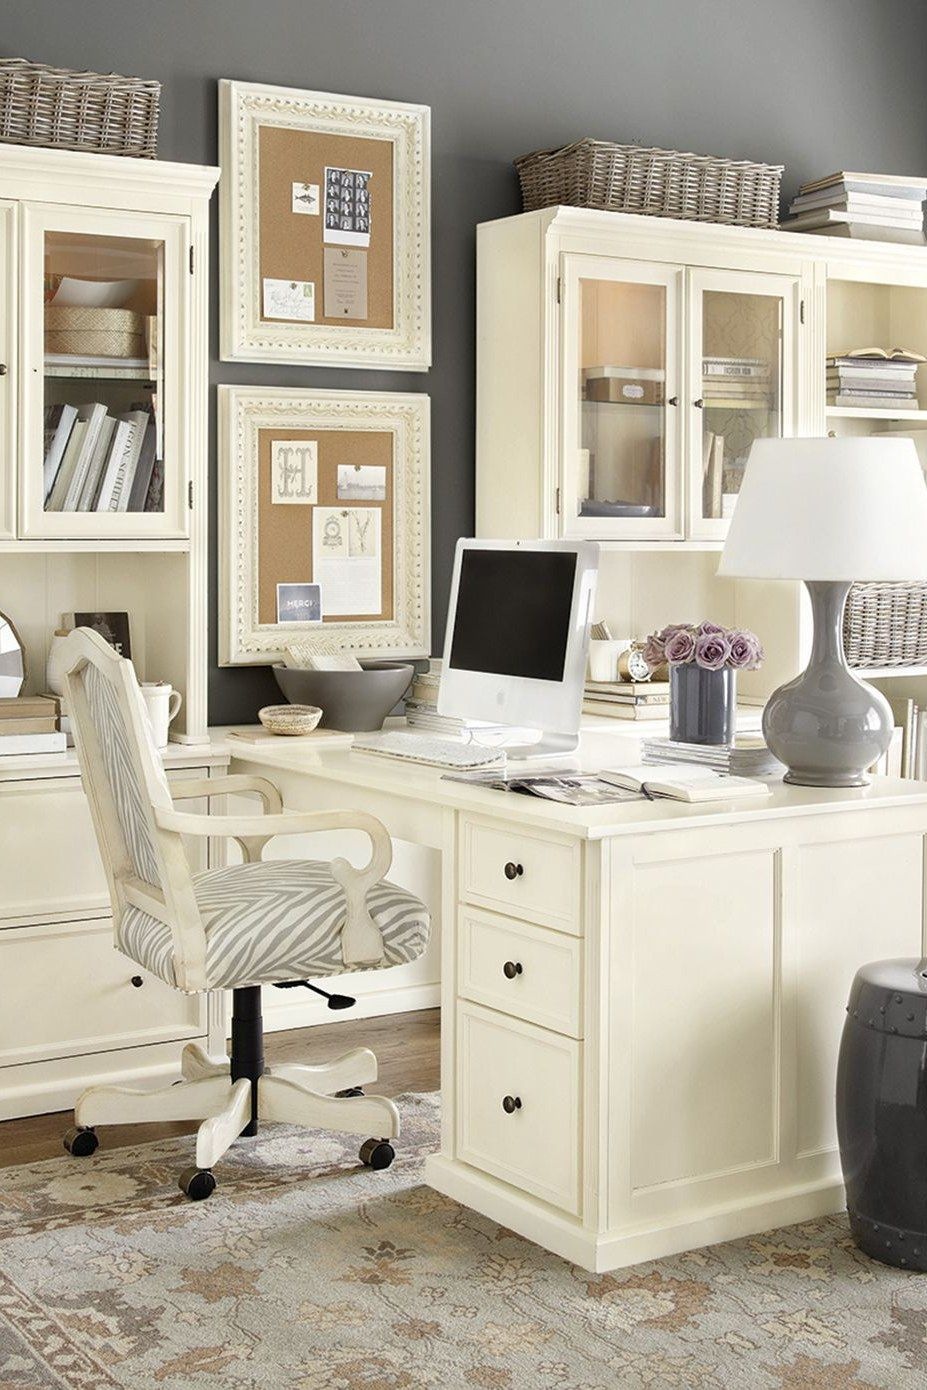 Home Office Decor. Home office and home study decor ideas, for ...